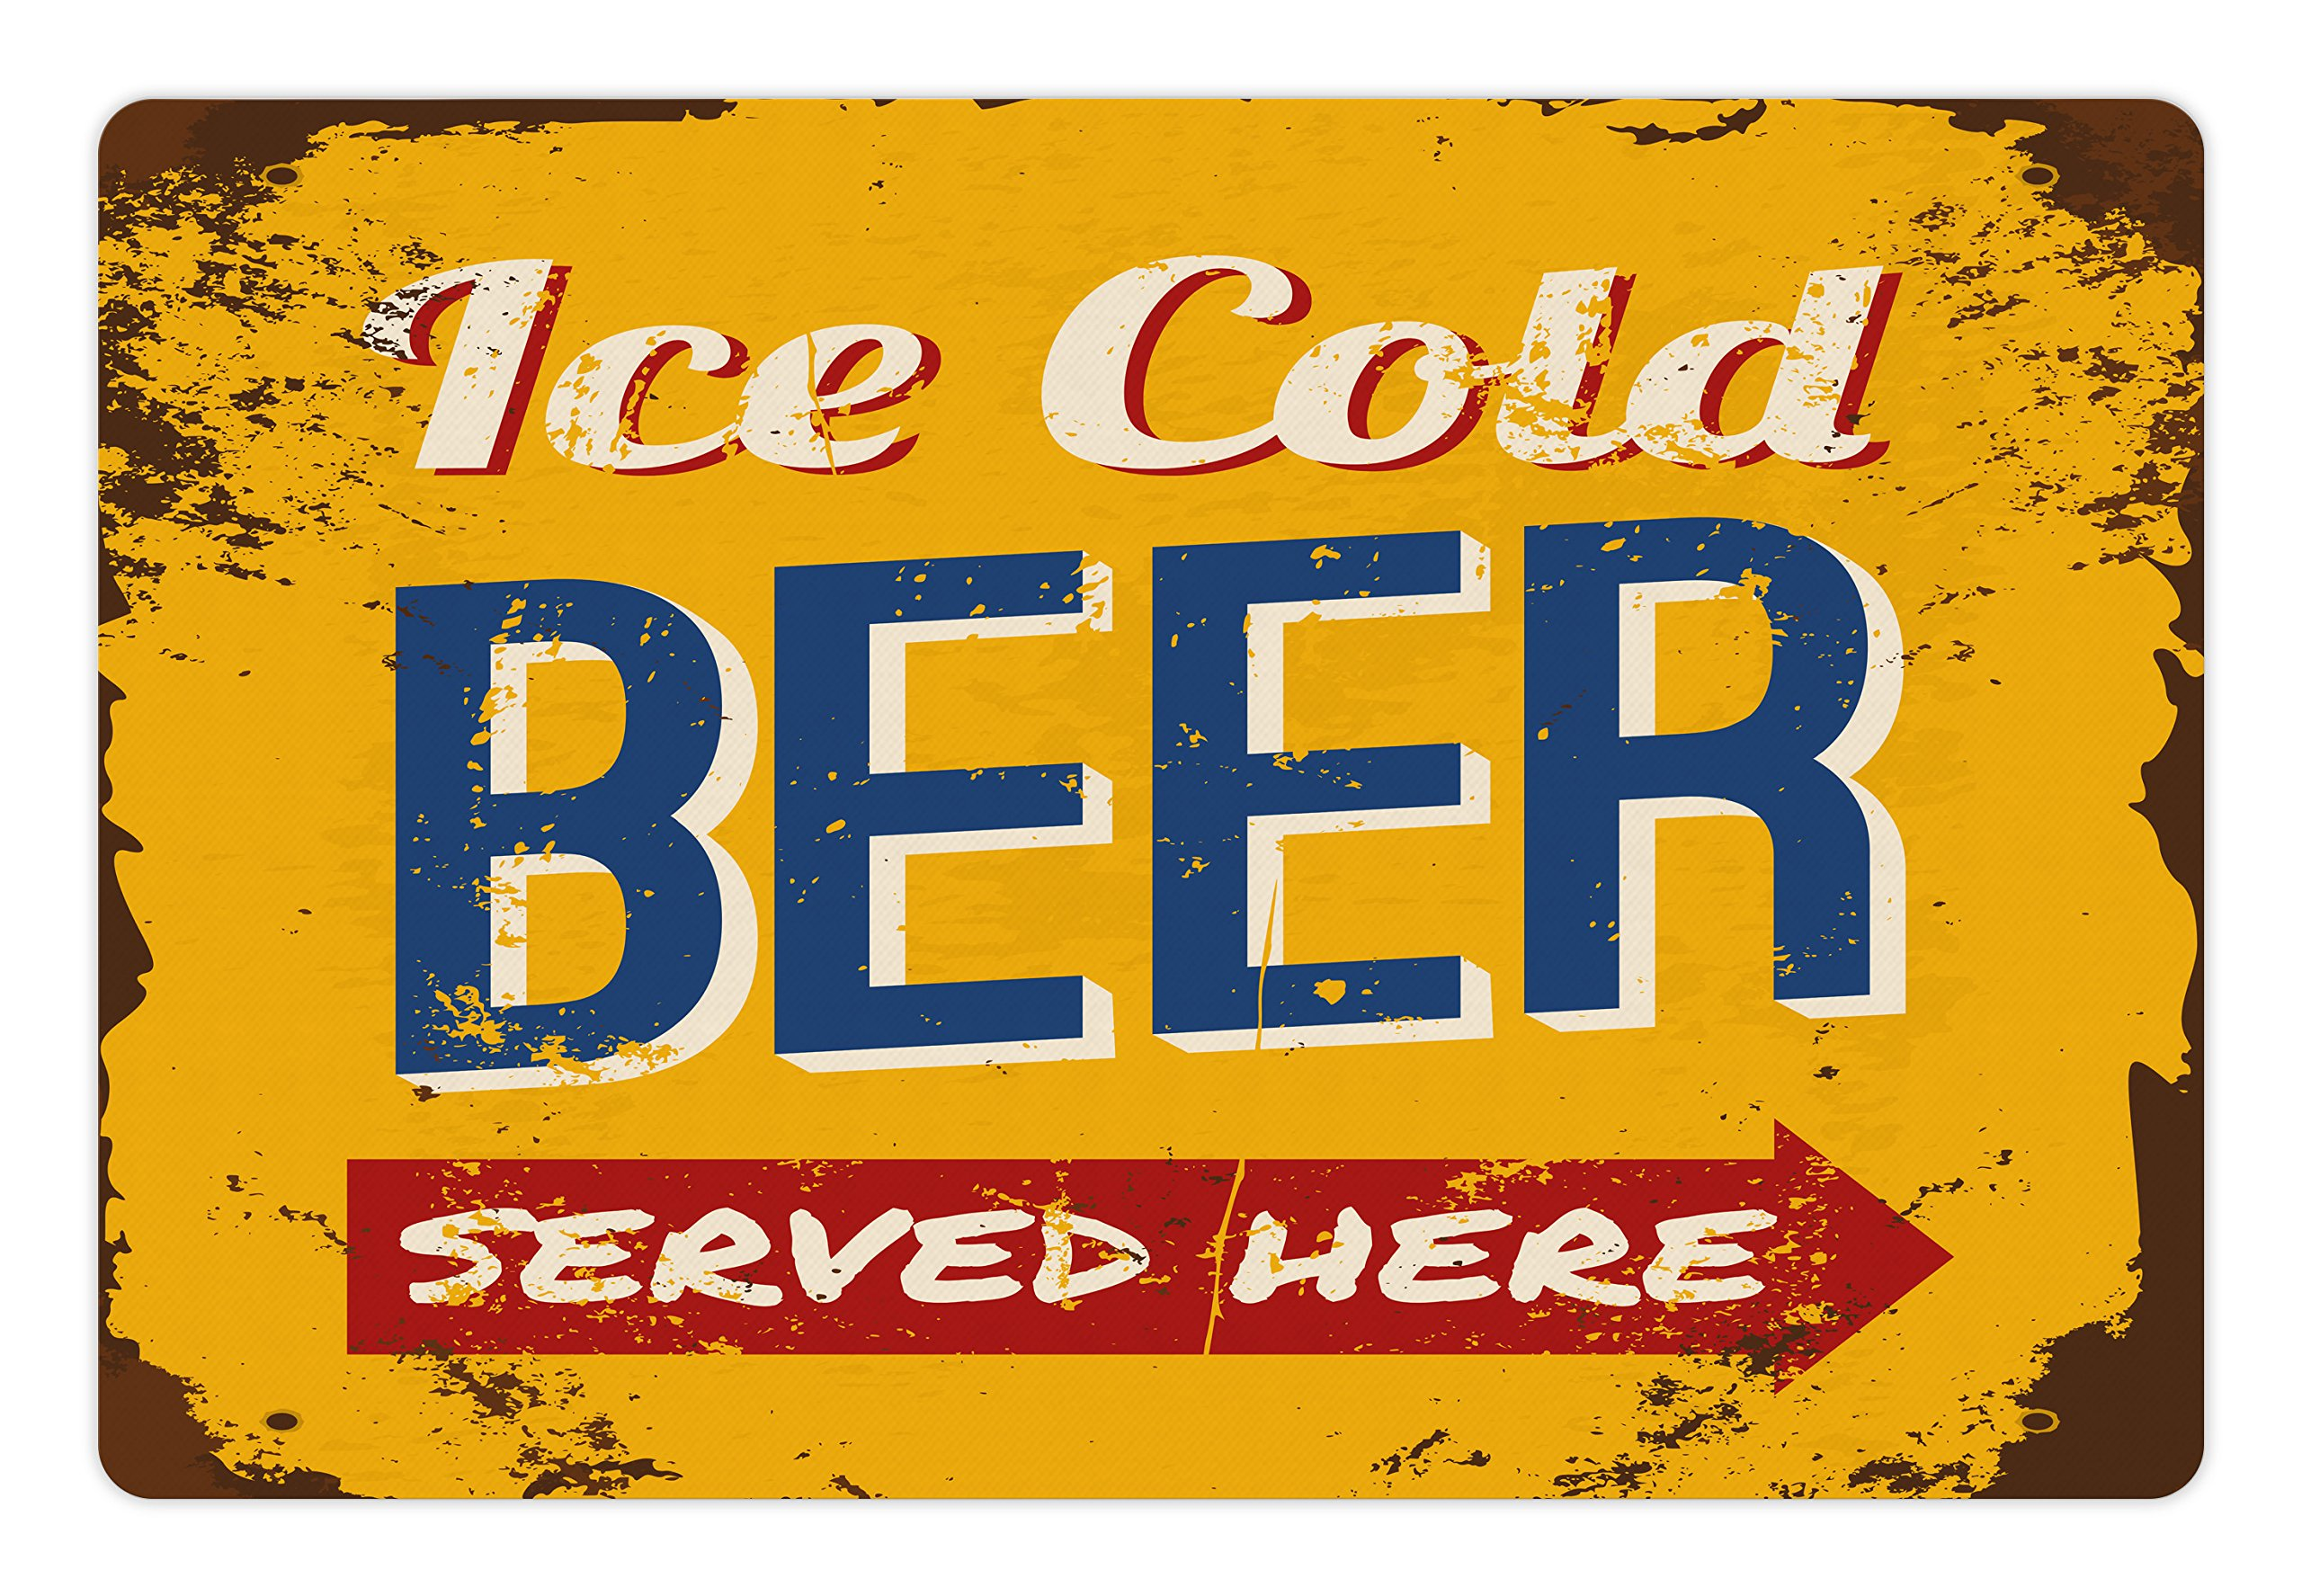 Lunarable Man Cave Pet Mats for Food and Water by, Vintage Worn Out Rusty Sign Design with Ice Cold Beer Served Here Beverage Print, Rectangle Non-Slip Rubber Mat for Dogs and Cats, Multicolor